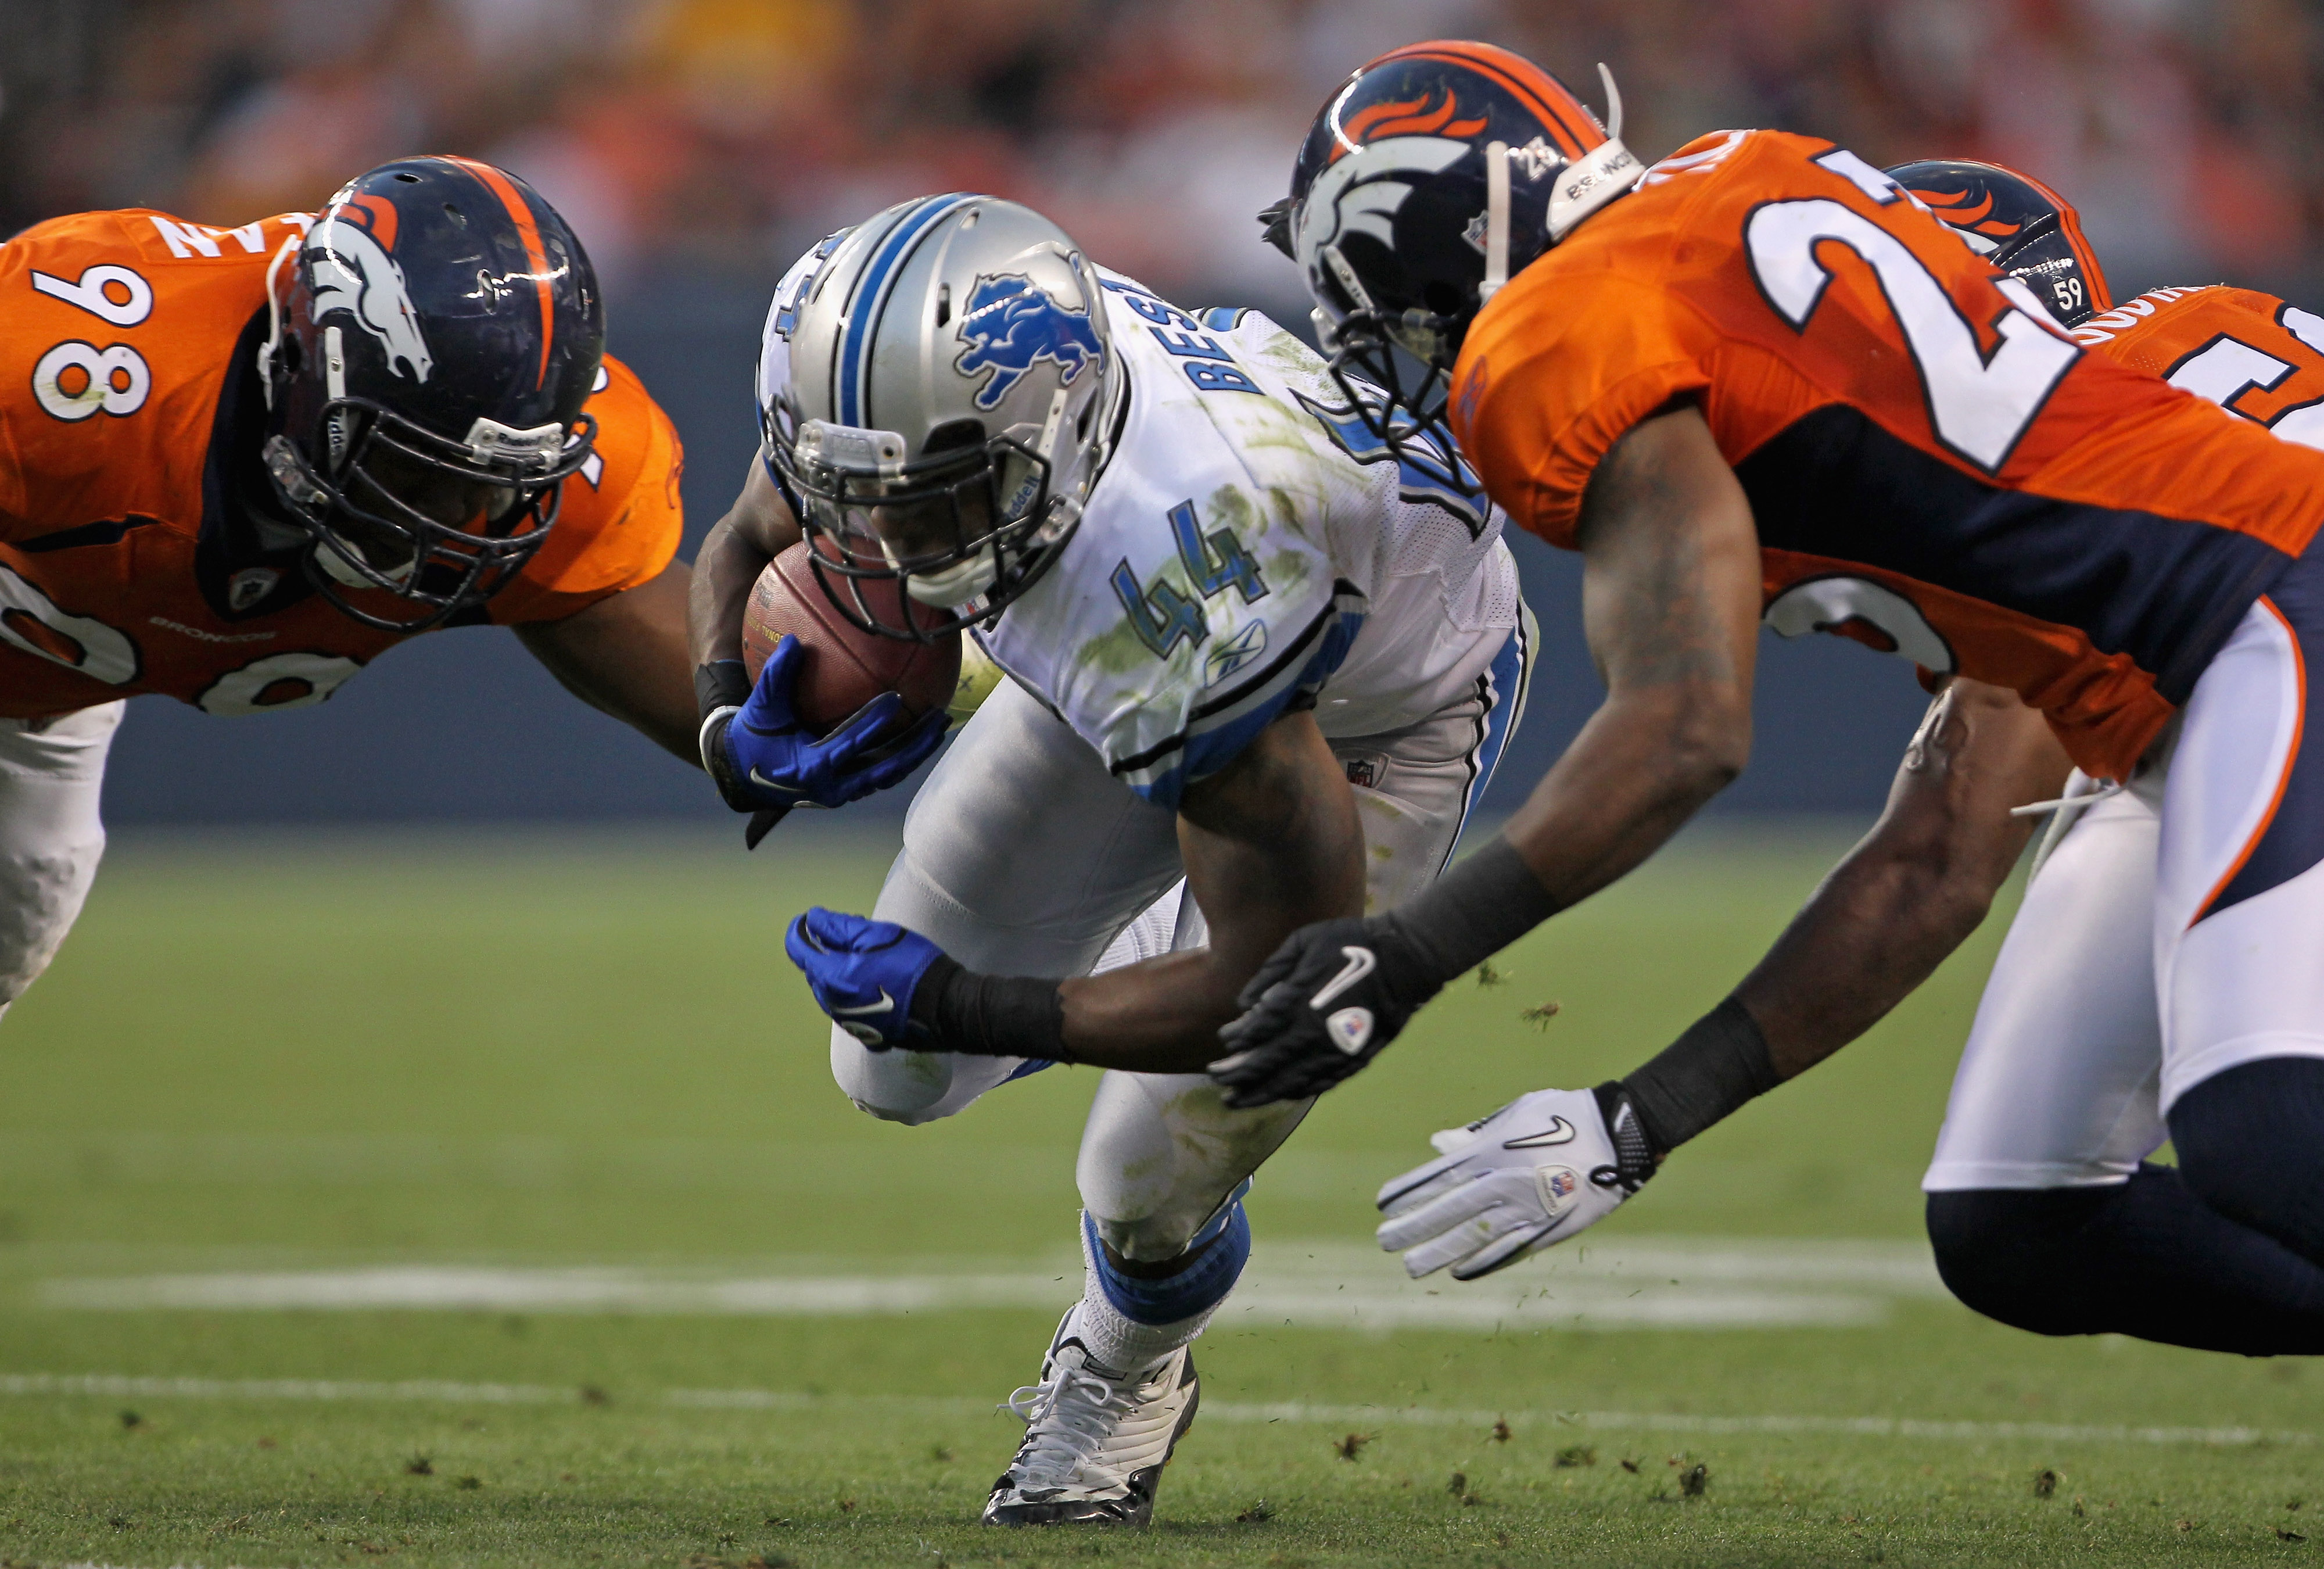 DENVER - AUGUST 21:  Jahvid Best #44 of the Detroit Lions rushes the ball as Ryan McBean #98 and Renaldo Hill #23 of the Denver Broncos make the stop during preseason NFL action at INVESCO Field at Mile High on August 21, 2010 in Denver, Colorado. The tou